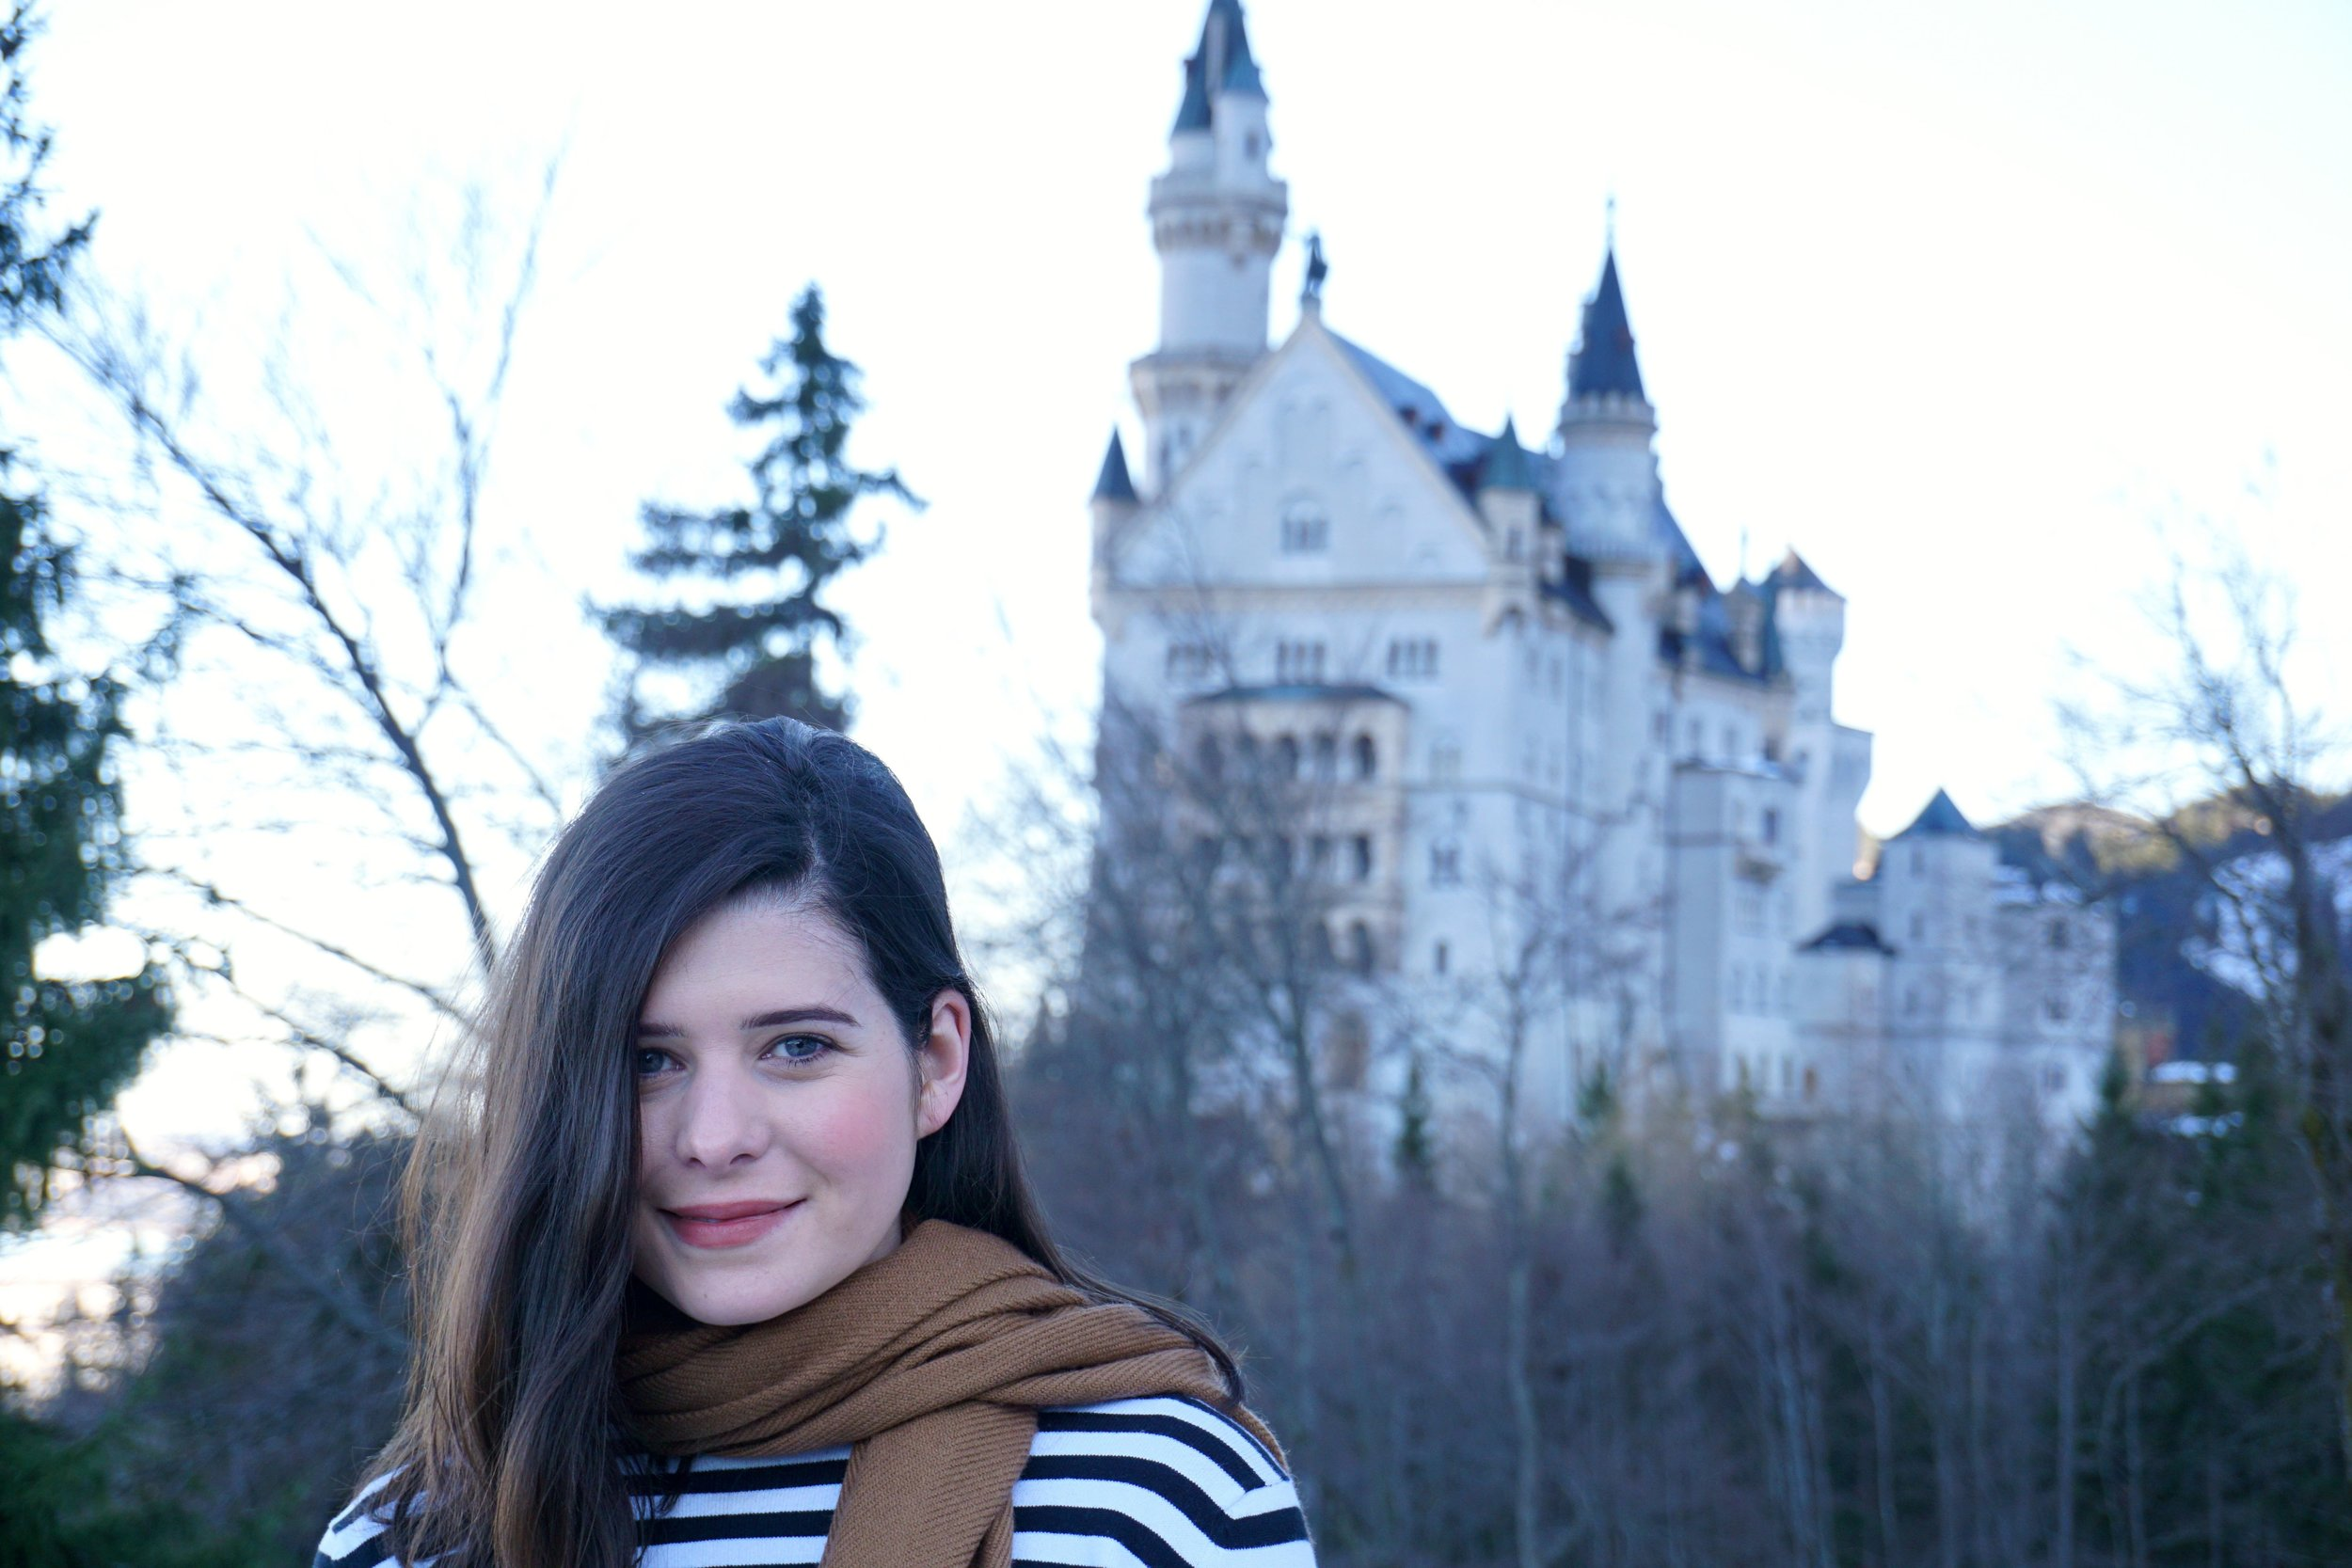 Alice in front of Neuschwanstein Castle in Germany